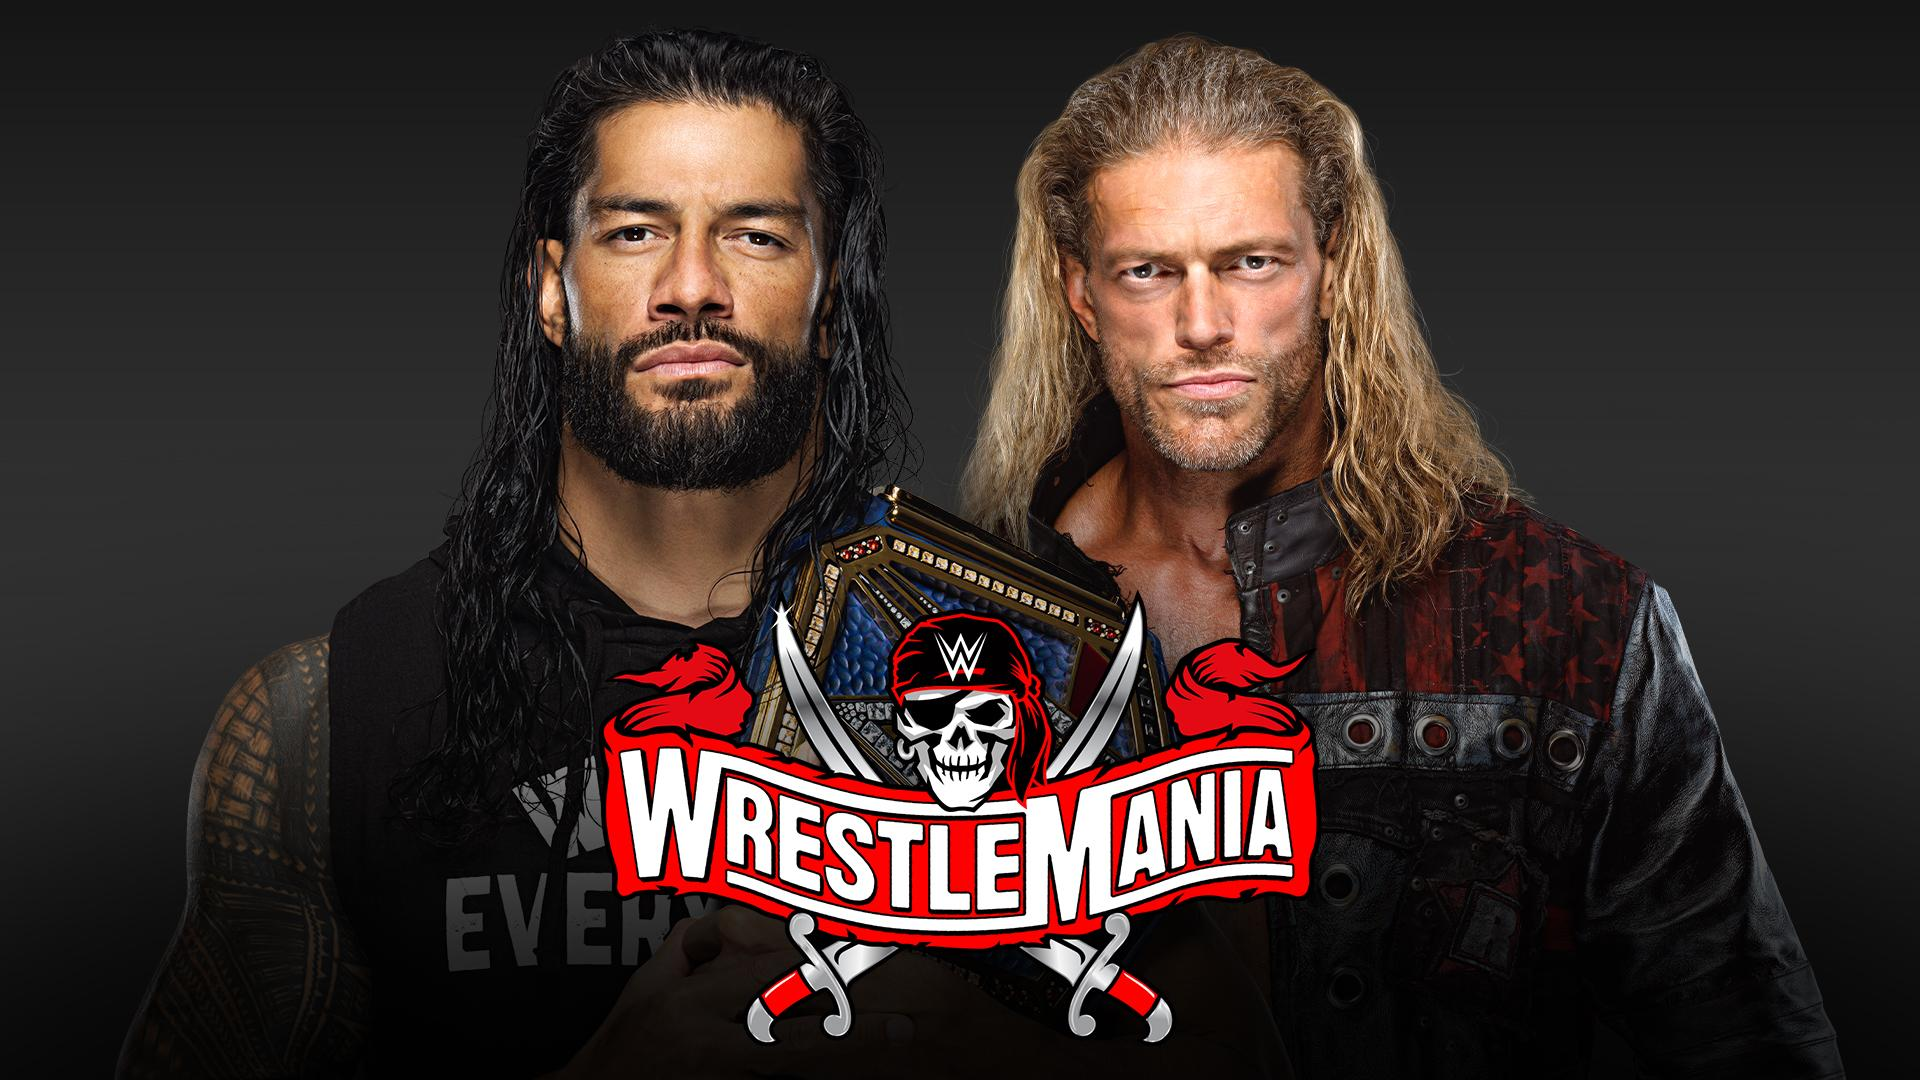 Wrestlemania 37 Faq Date Price Matches Covid Restrictions Rolling Stone